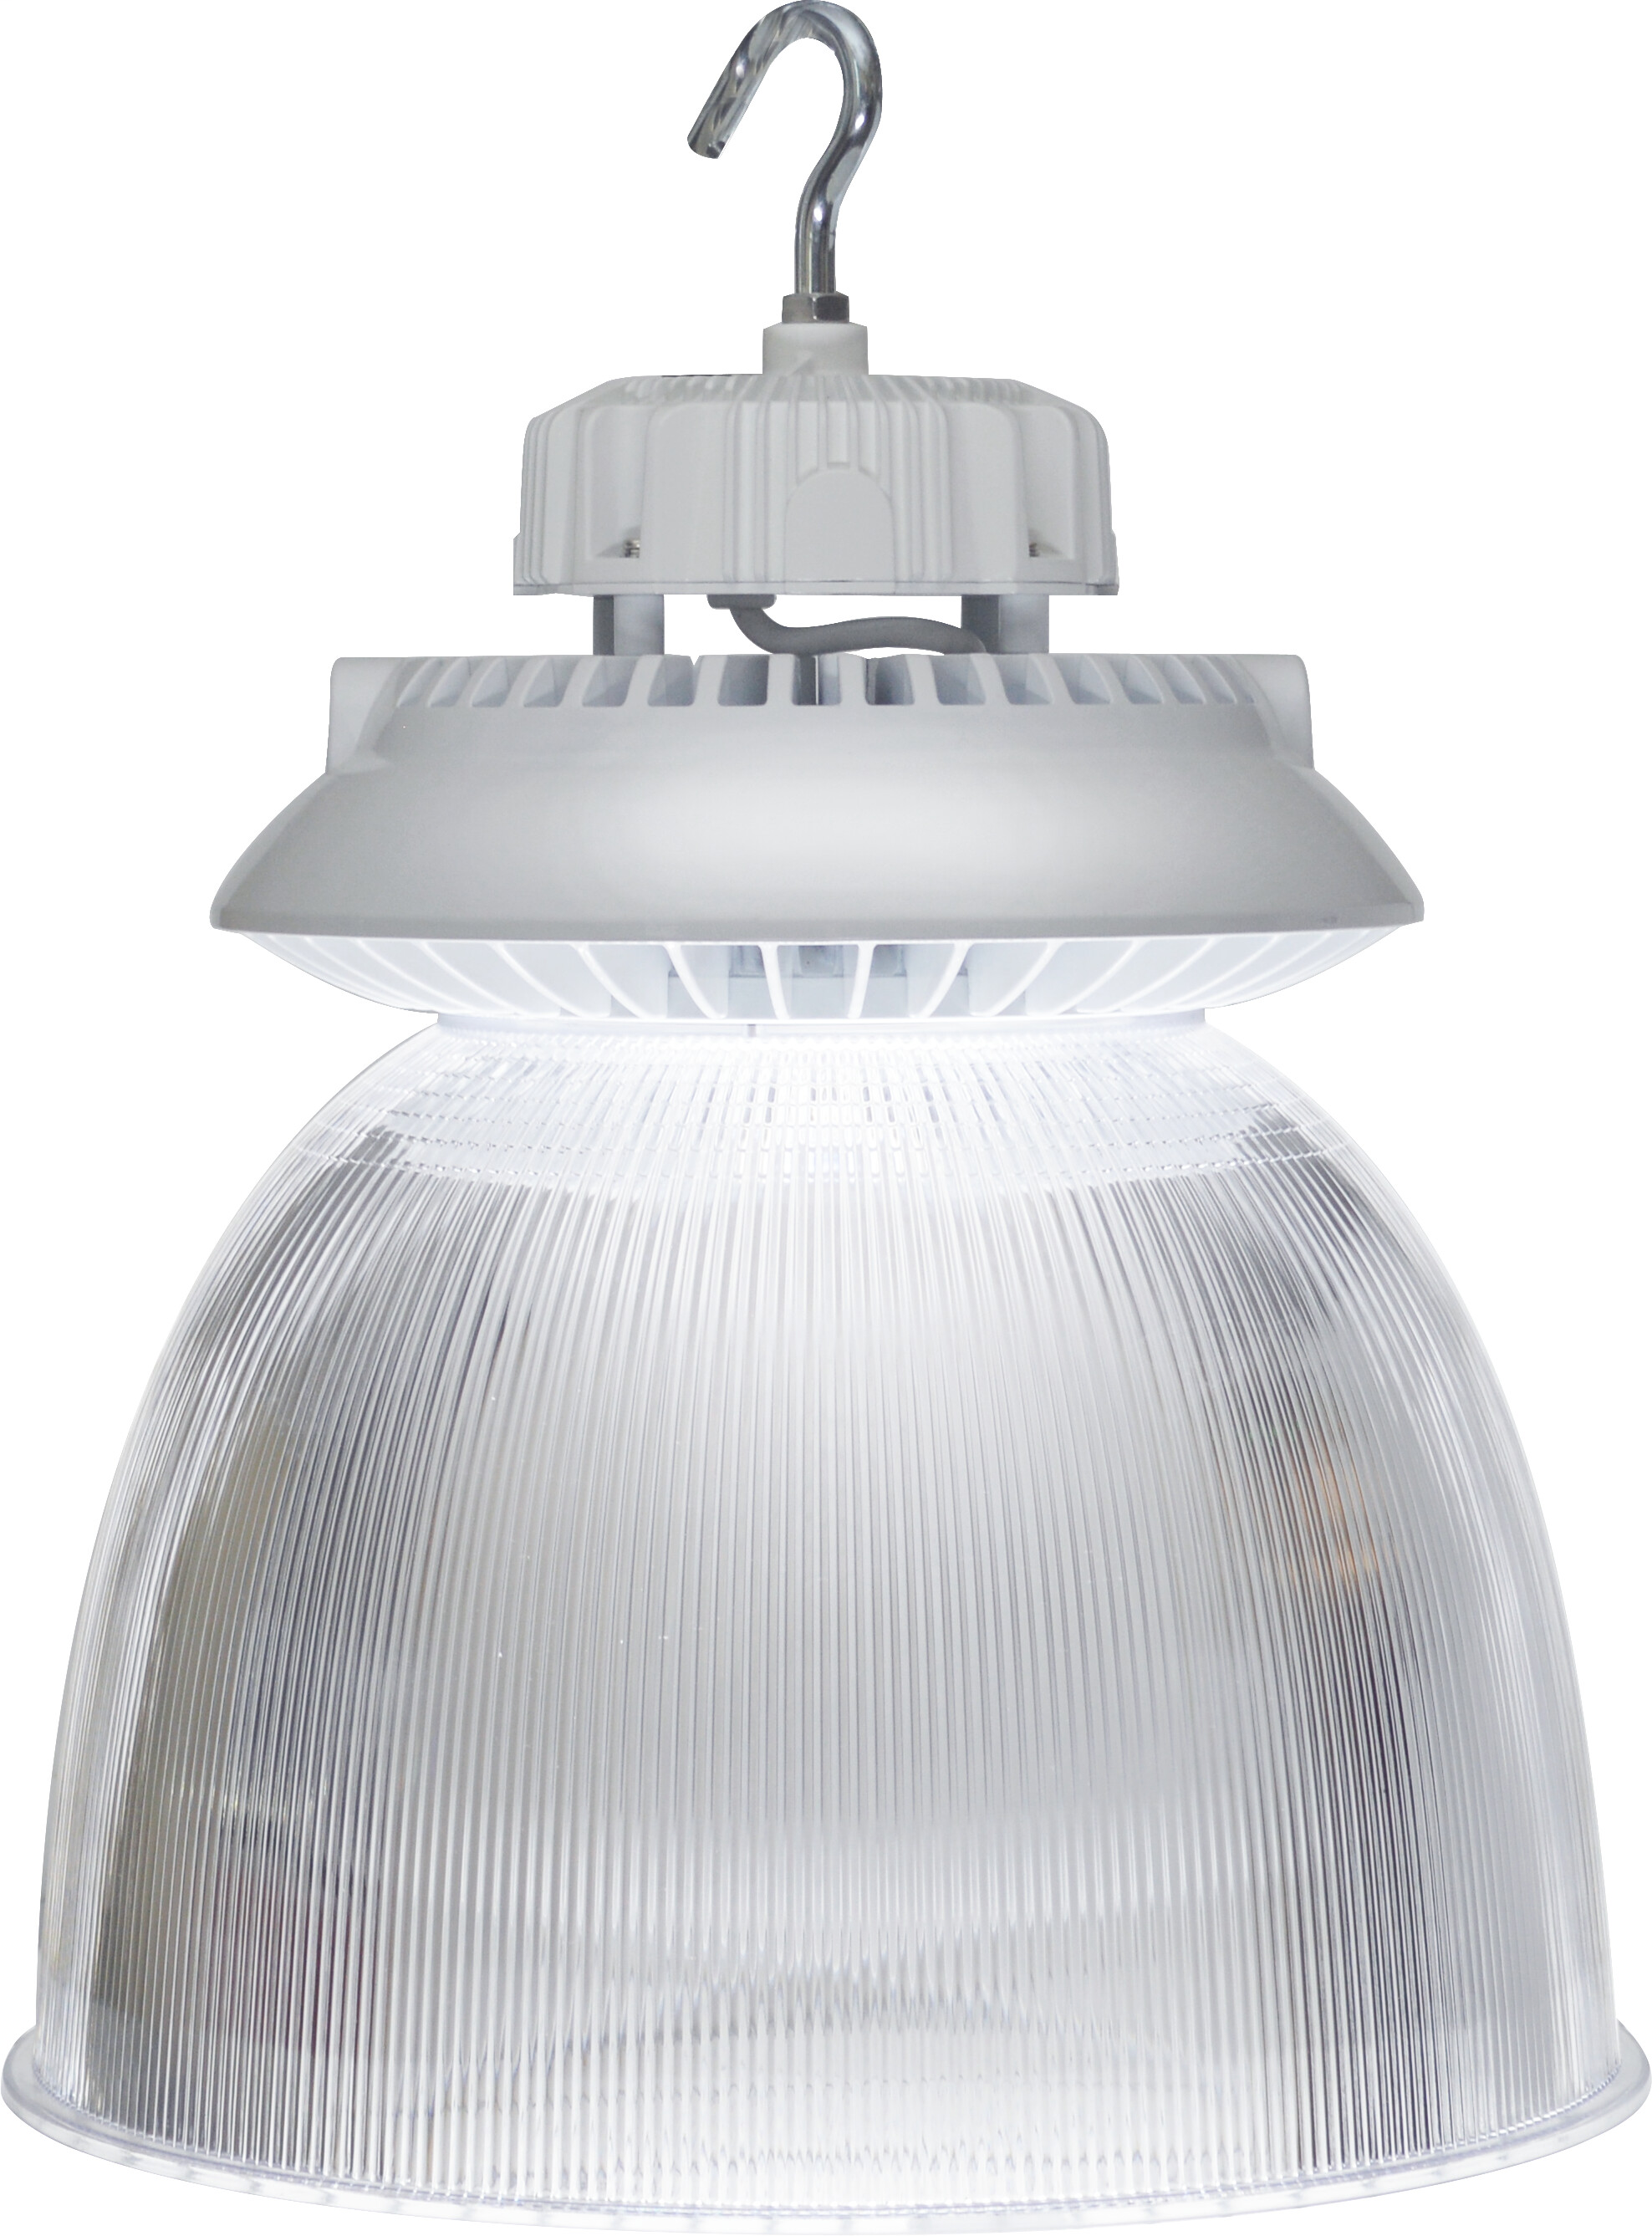 Features: BAY LIGHT REFLECTOR POLYCARBONATE 70 DEGREE BEAM